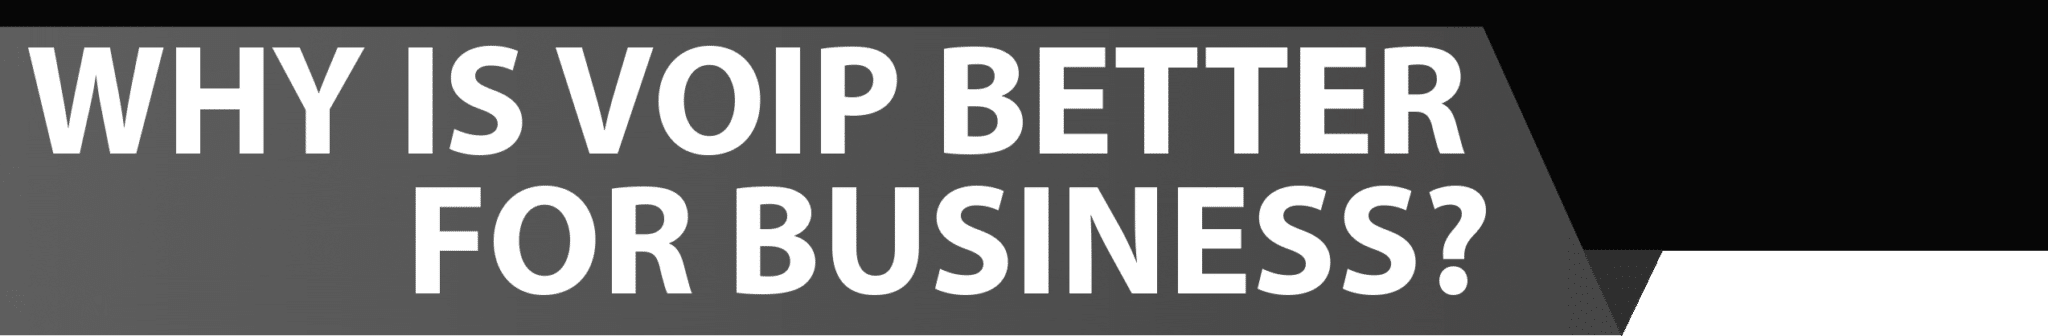 WHY IS VOIP BETTER FOR BUSINESS?